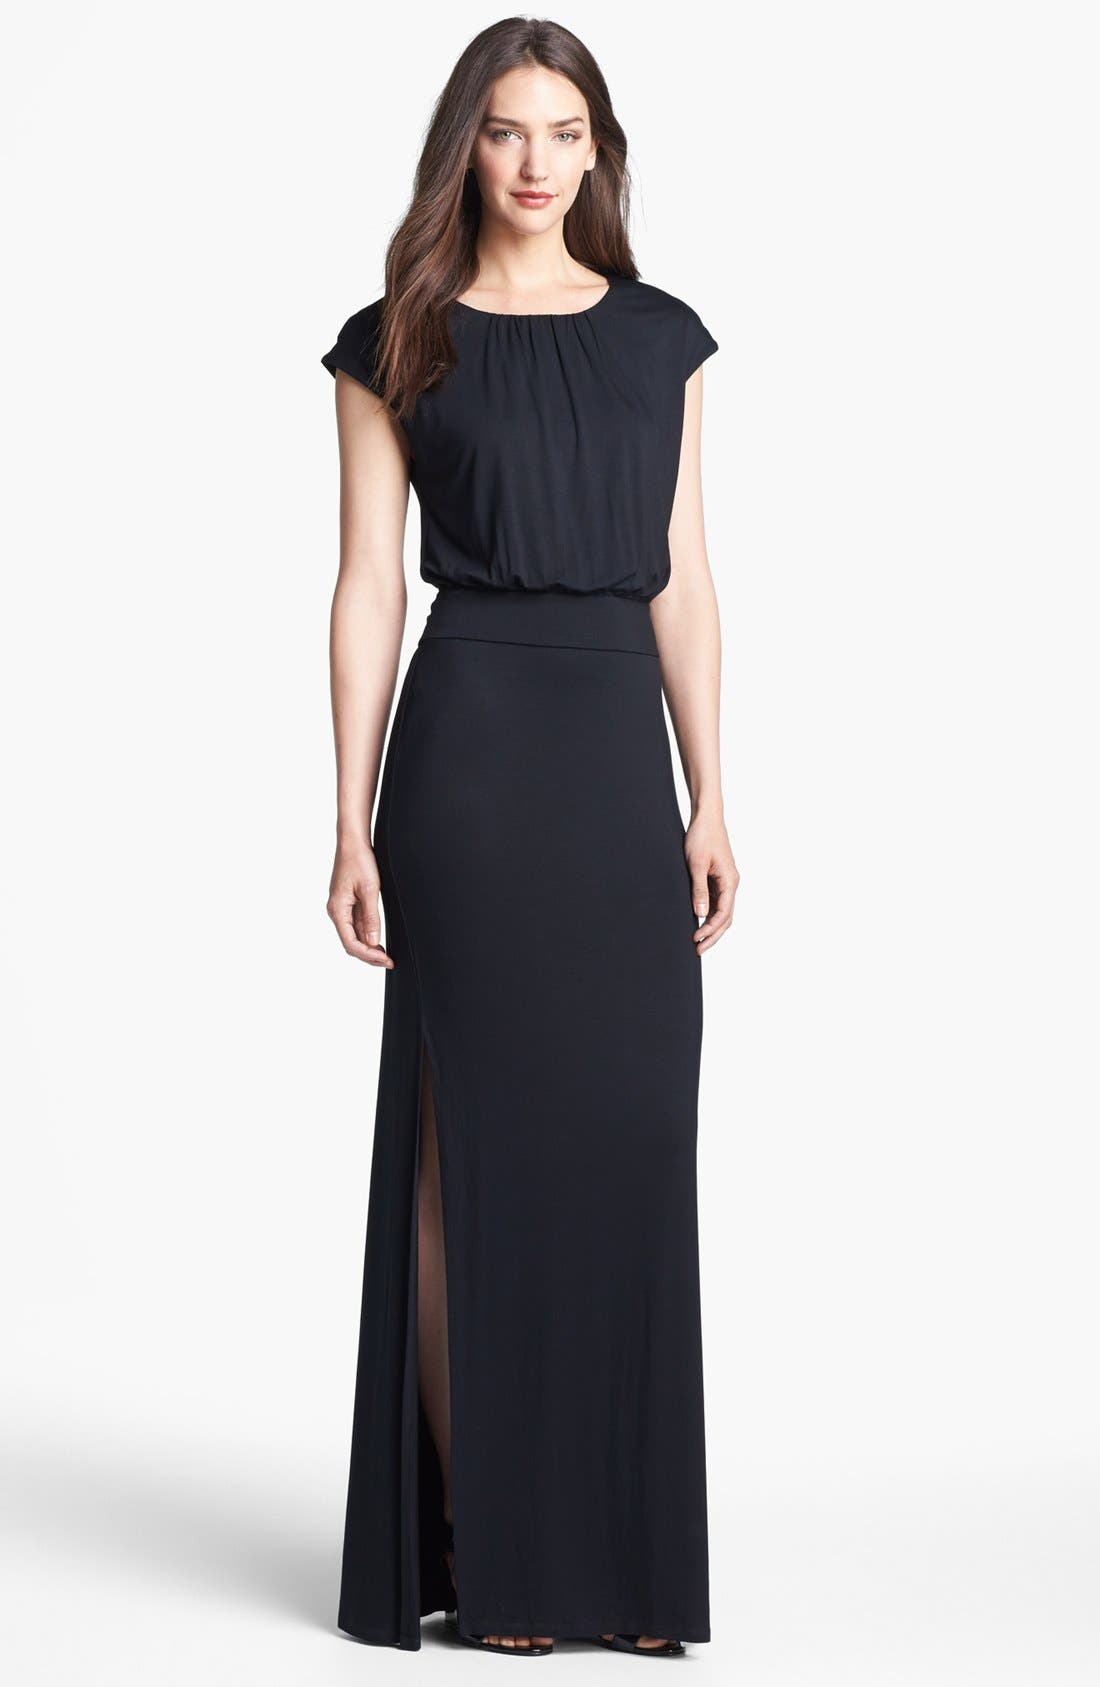 Alternate Image 1 Selected - Felicity & Coco 'Vienna' Blouson Maxi Dress (Nordstrom Exclusive)